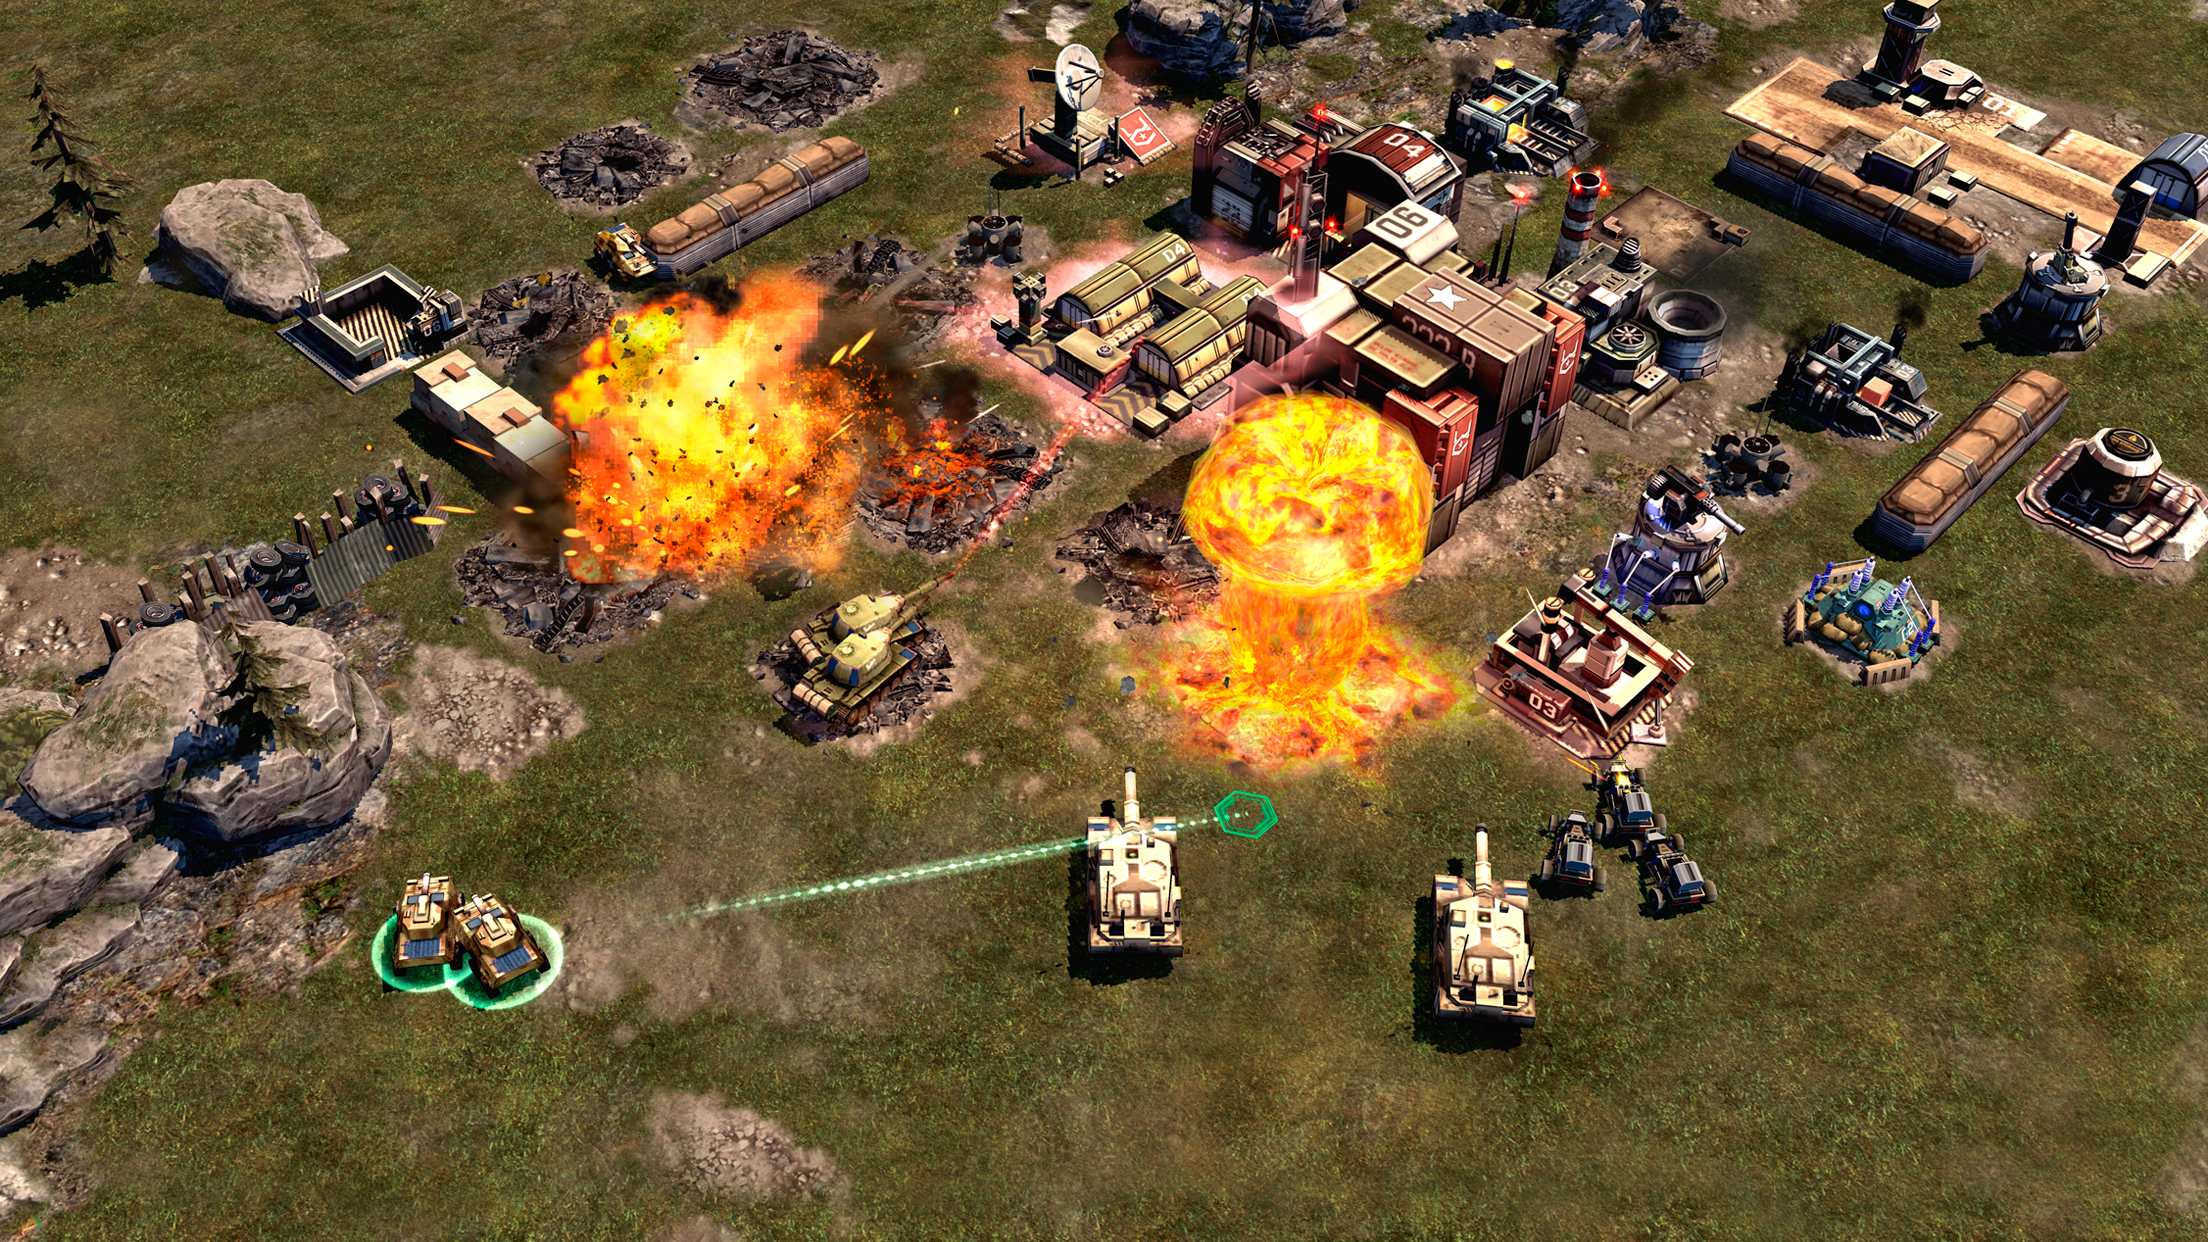 Command & Conquer's Louis Castle returns to fight again on the RTS front